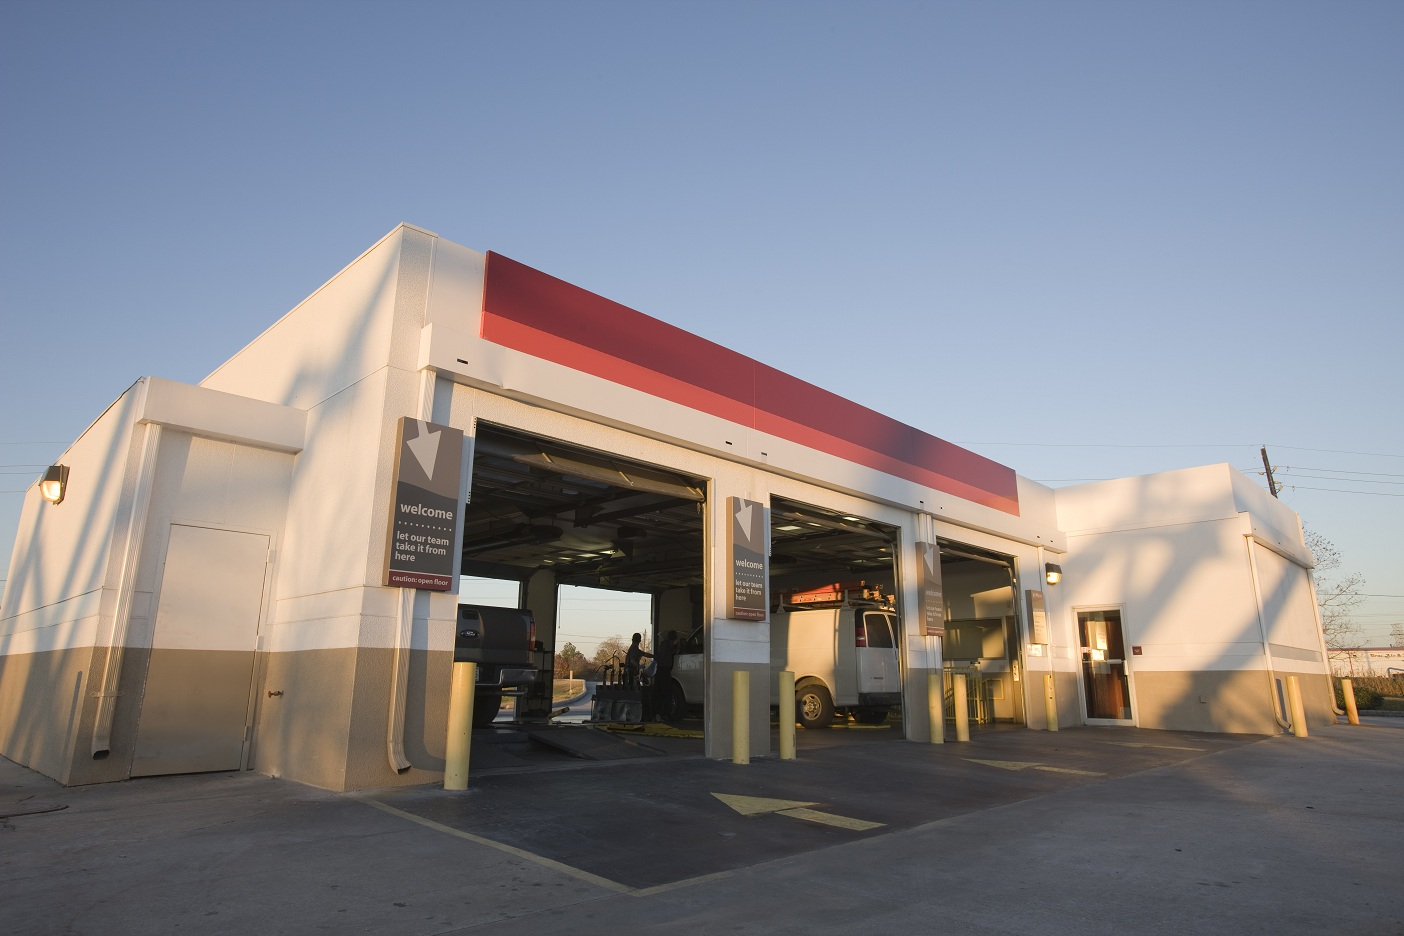 Jiffy Lube in Lake Elsinore, CA